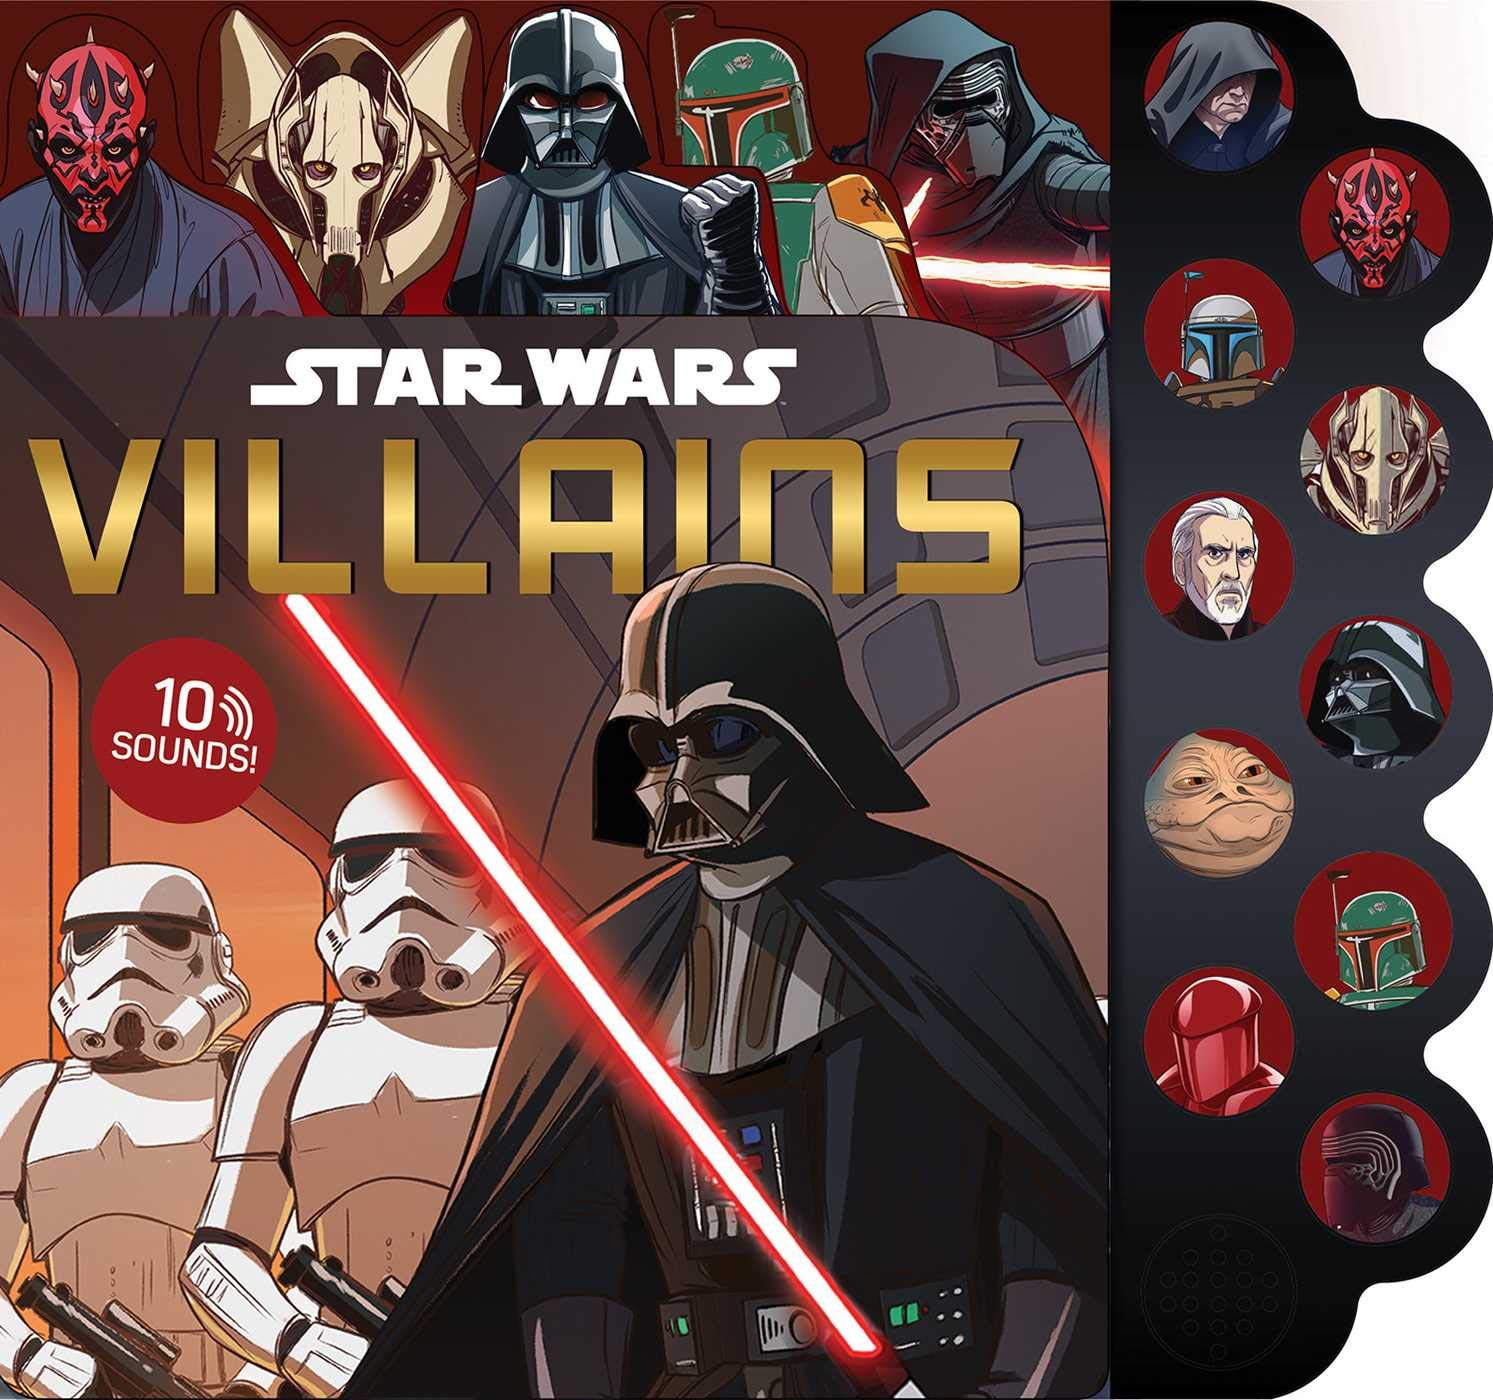 Star Wars: Villains - 10-Button Sound Book (01.10.2019)